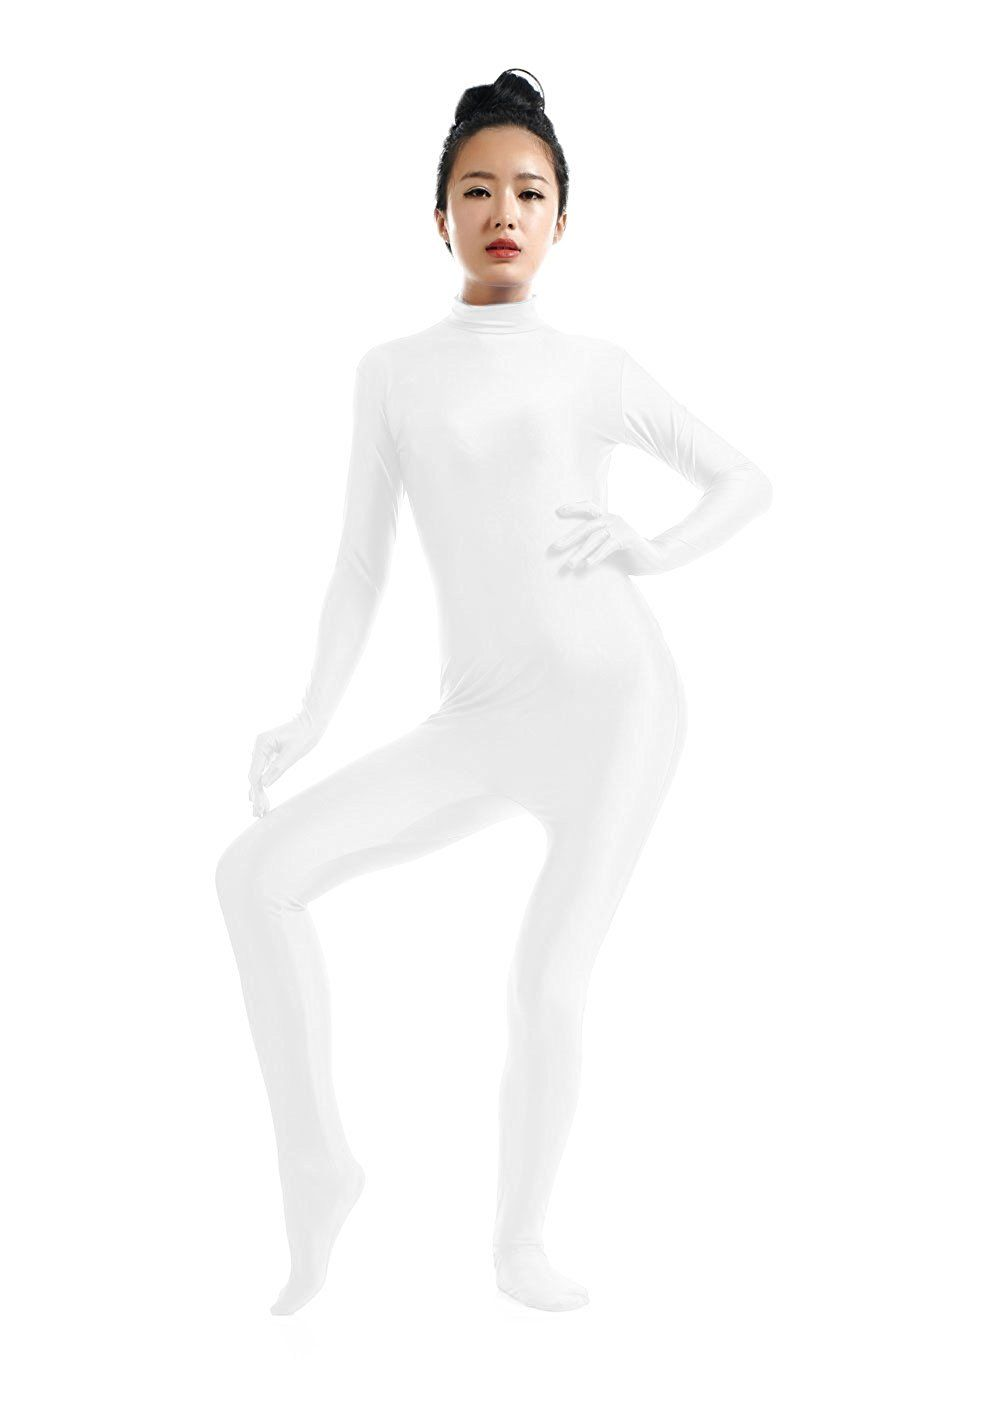 WOLF UNITARD Long Sleeve Bodysuit for Adult and Child